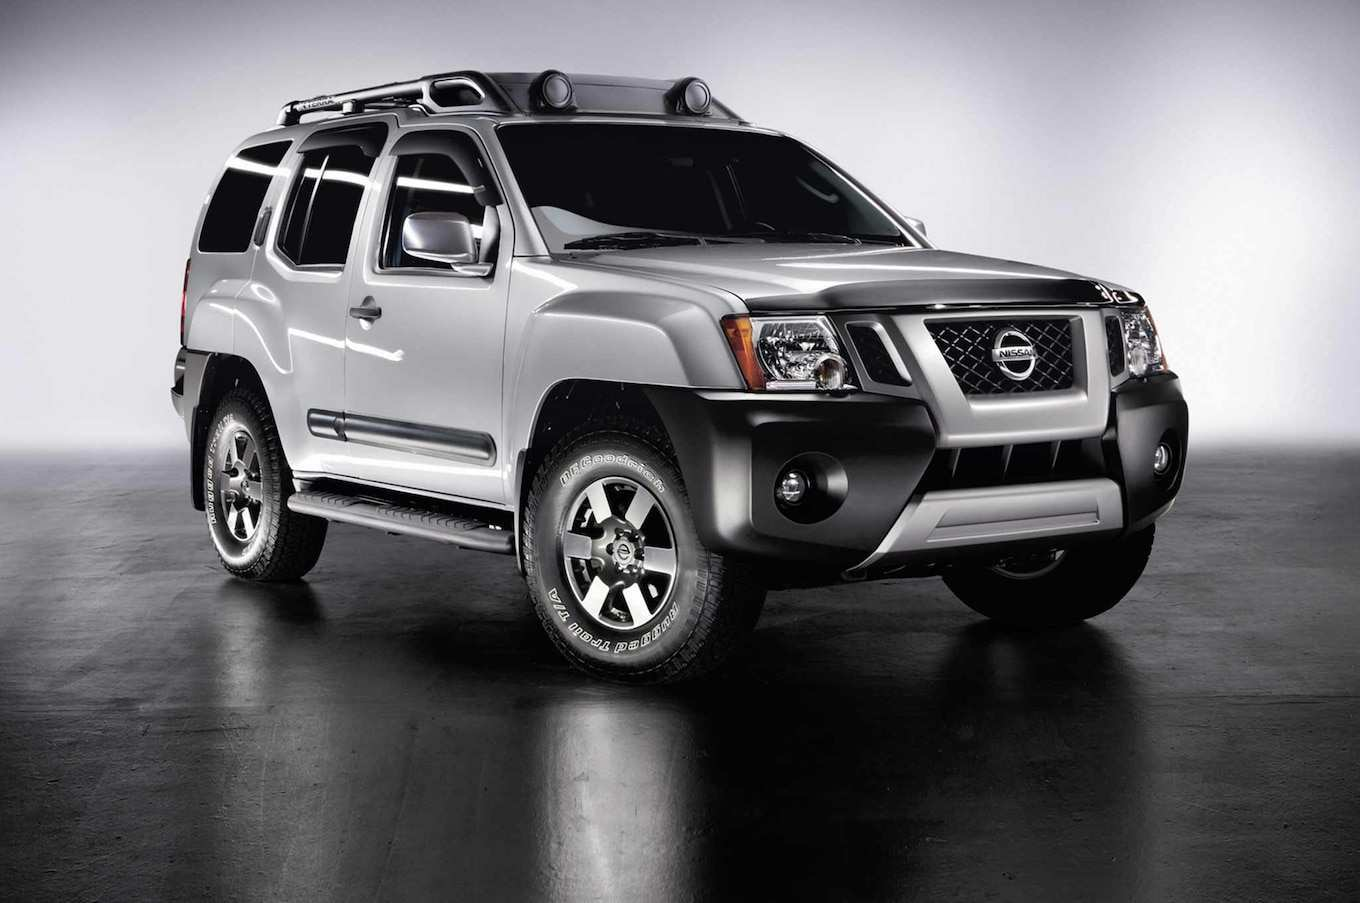 98 Best Review Nissan Xterra 2020 Exterior Date Pricing with Nissan Xterra 2020 Exterior Date